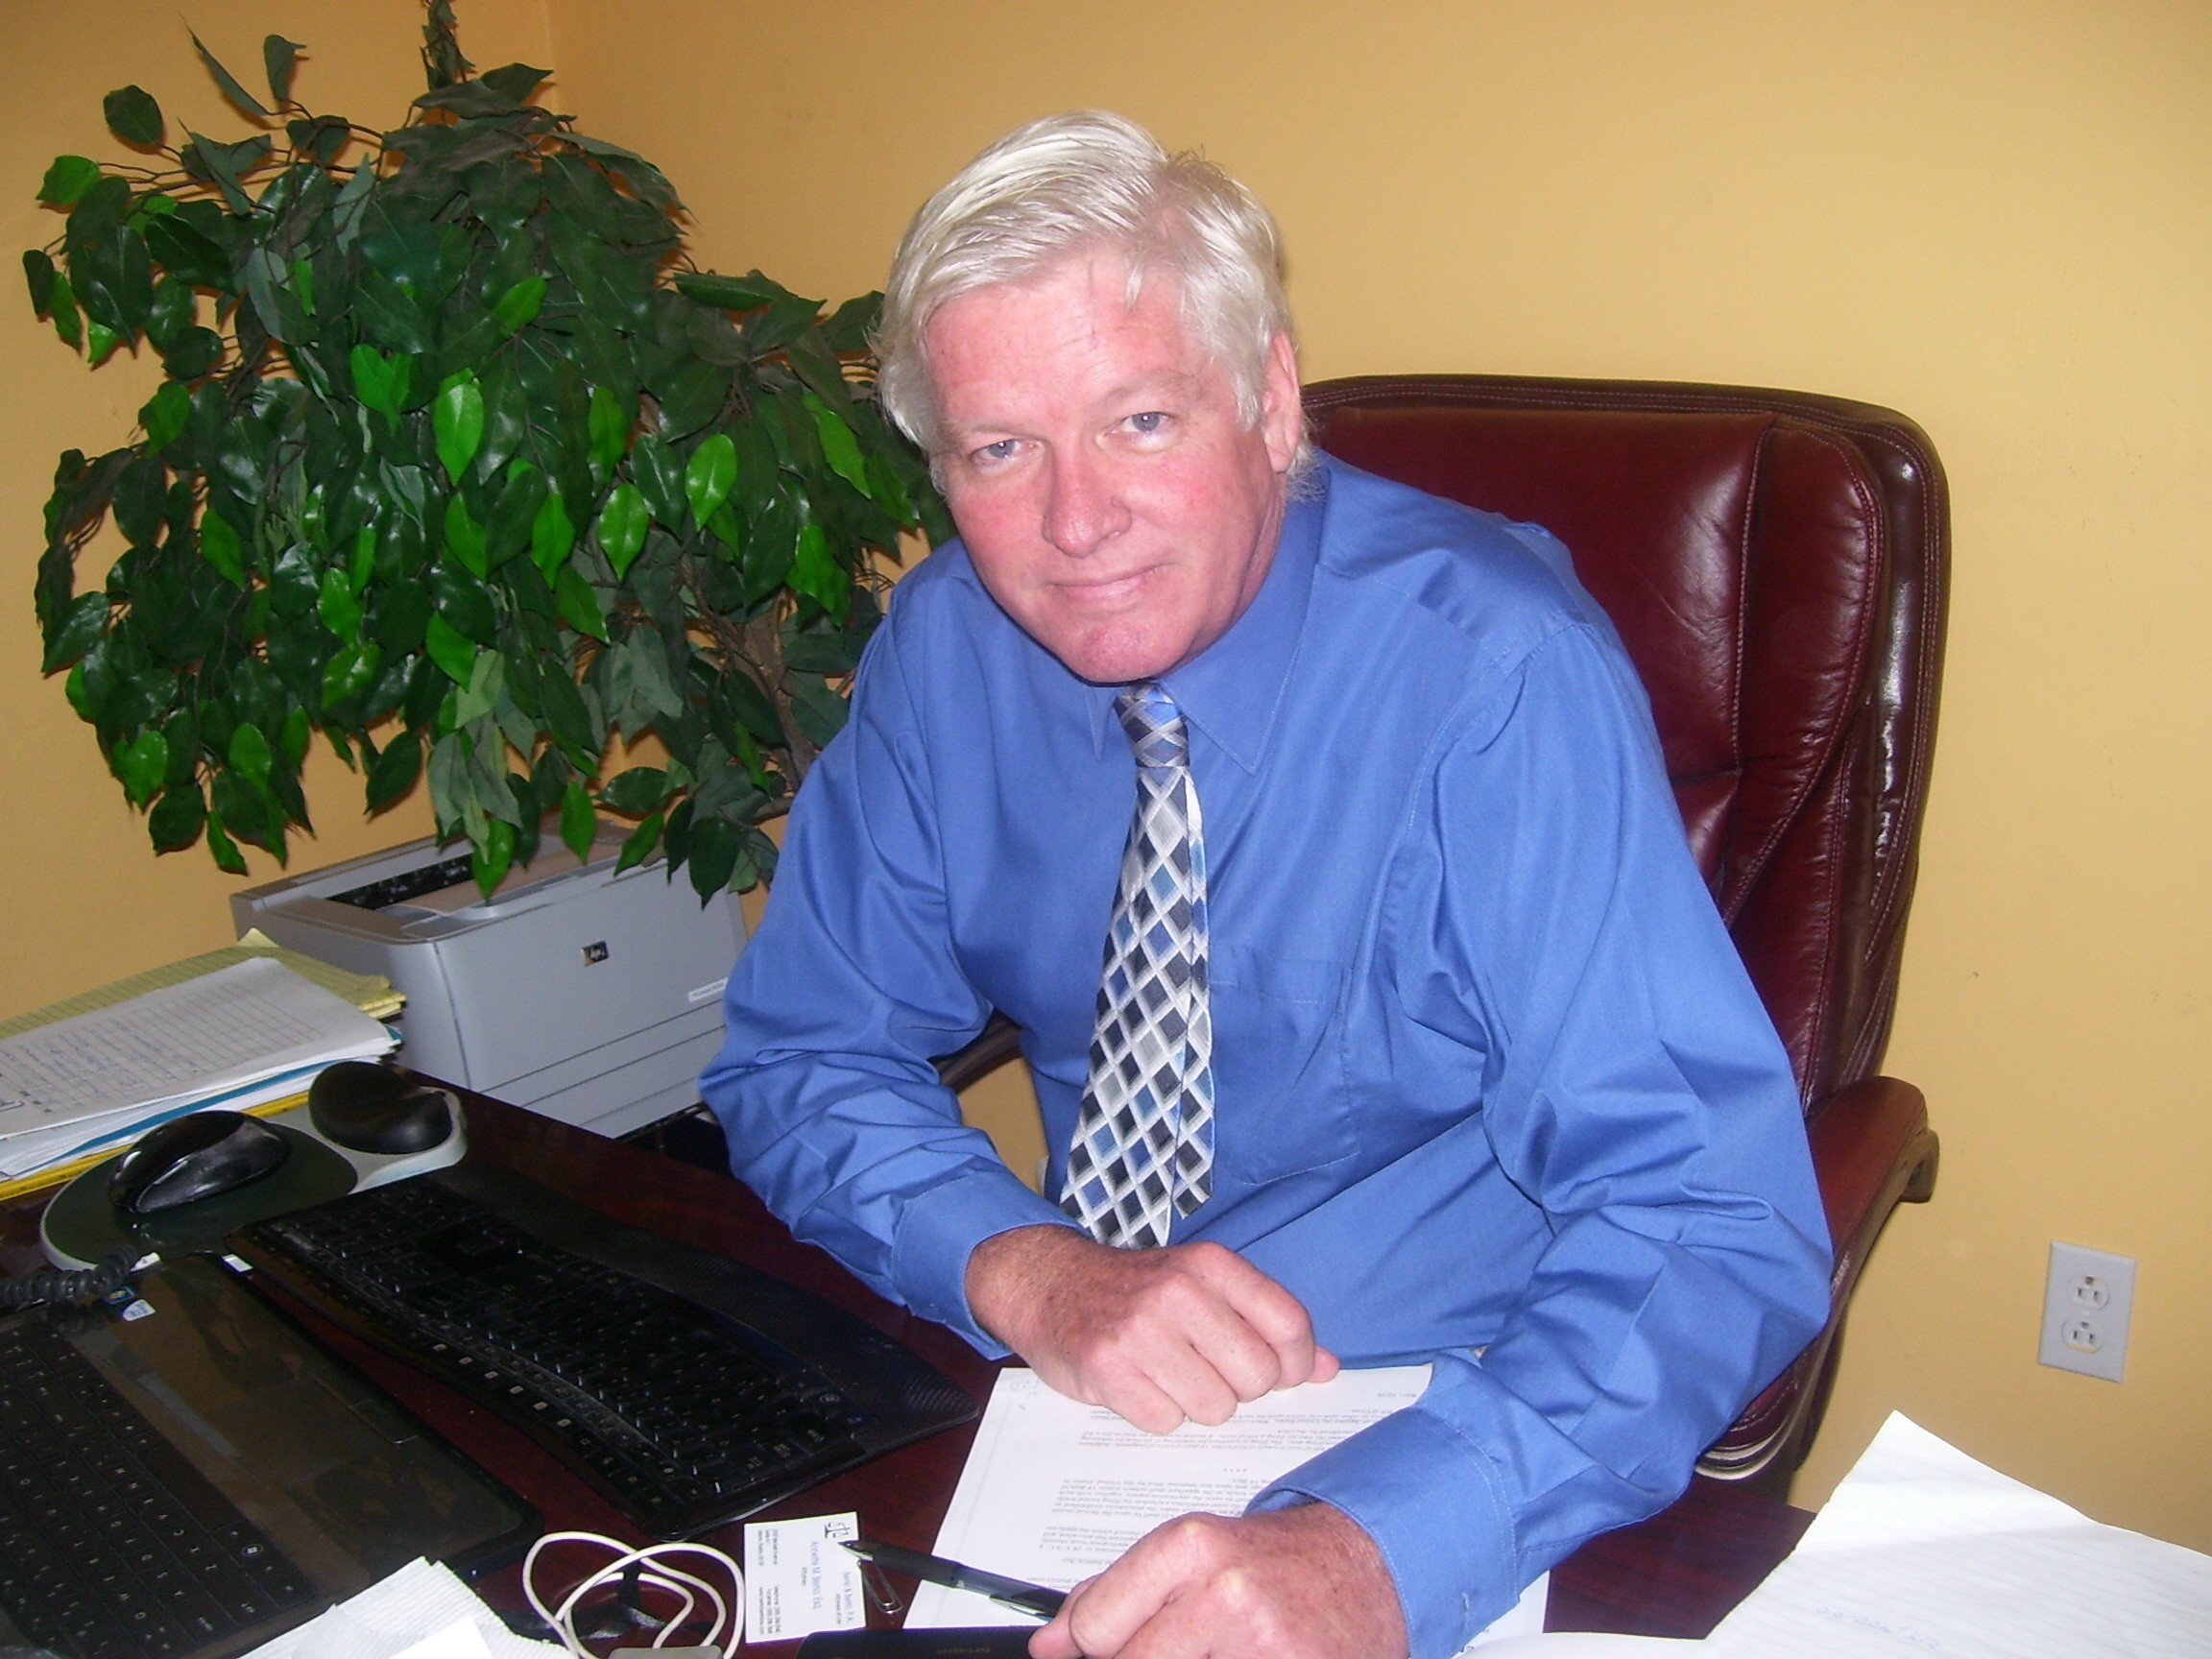 tom woods attorney at desk